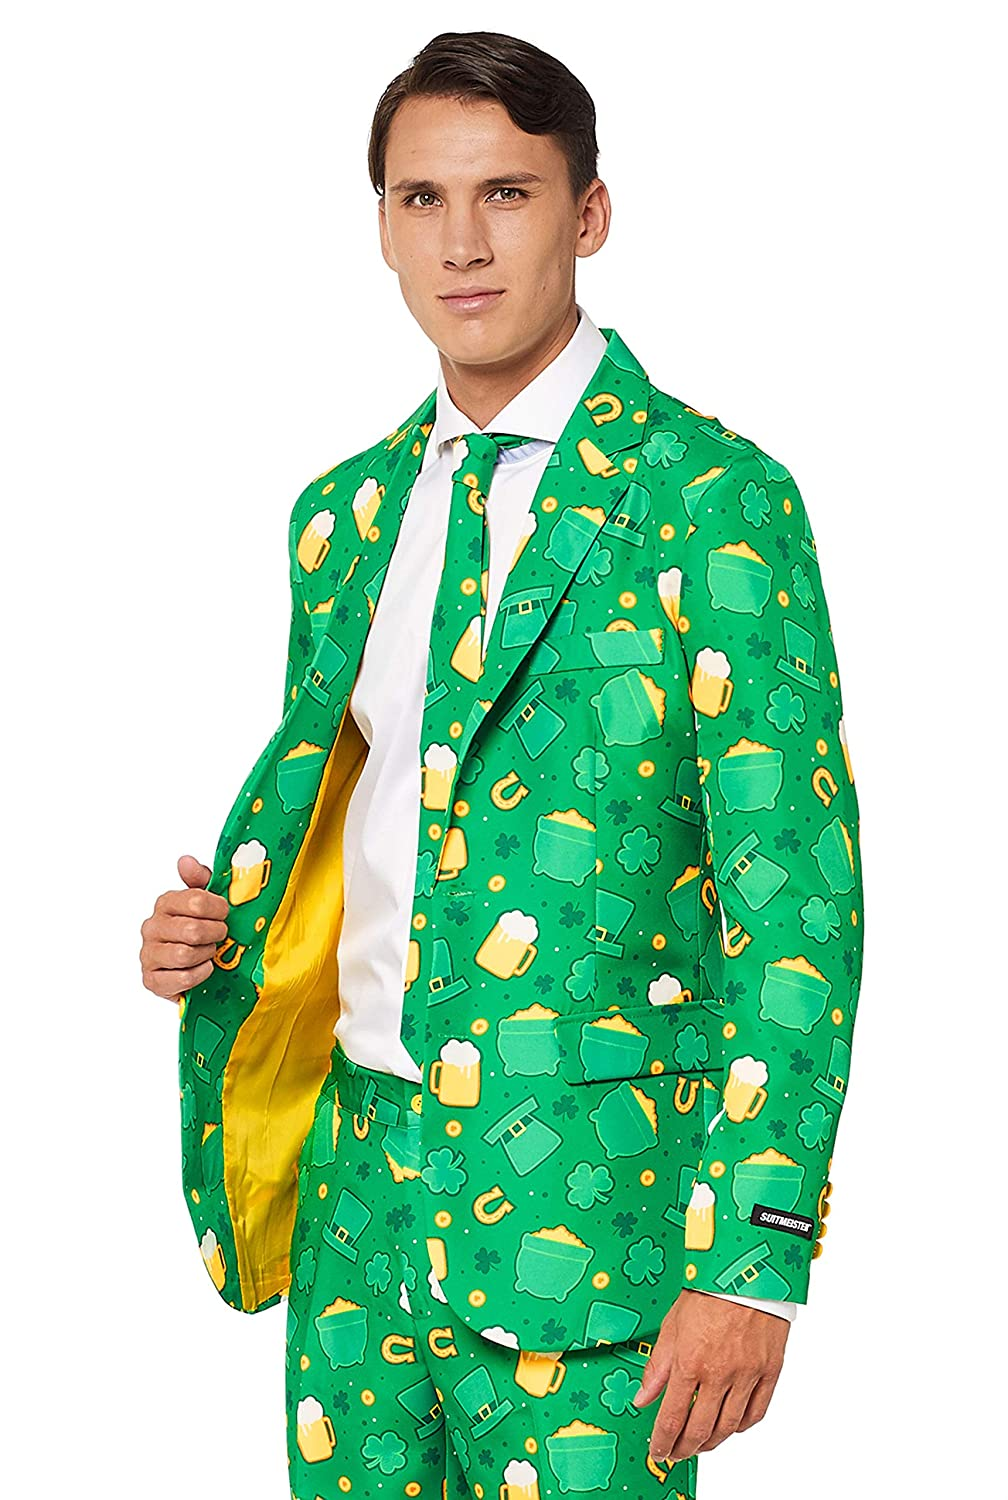 1ac48de63 Suitmeister Patrick Clover Suit with Shamrock Print for Men Coming with  Green Pants, Jacket, Tie at Amazon Men's Clothing store: